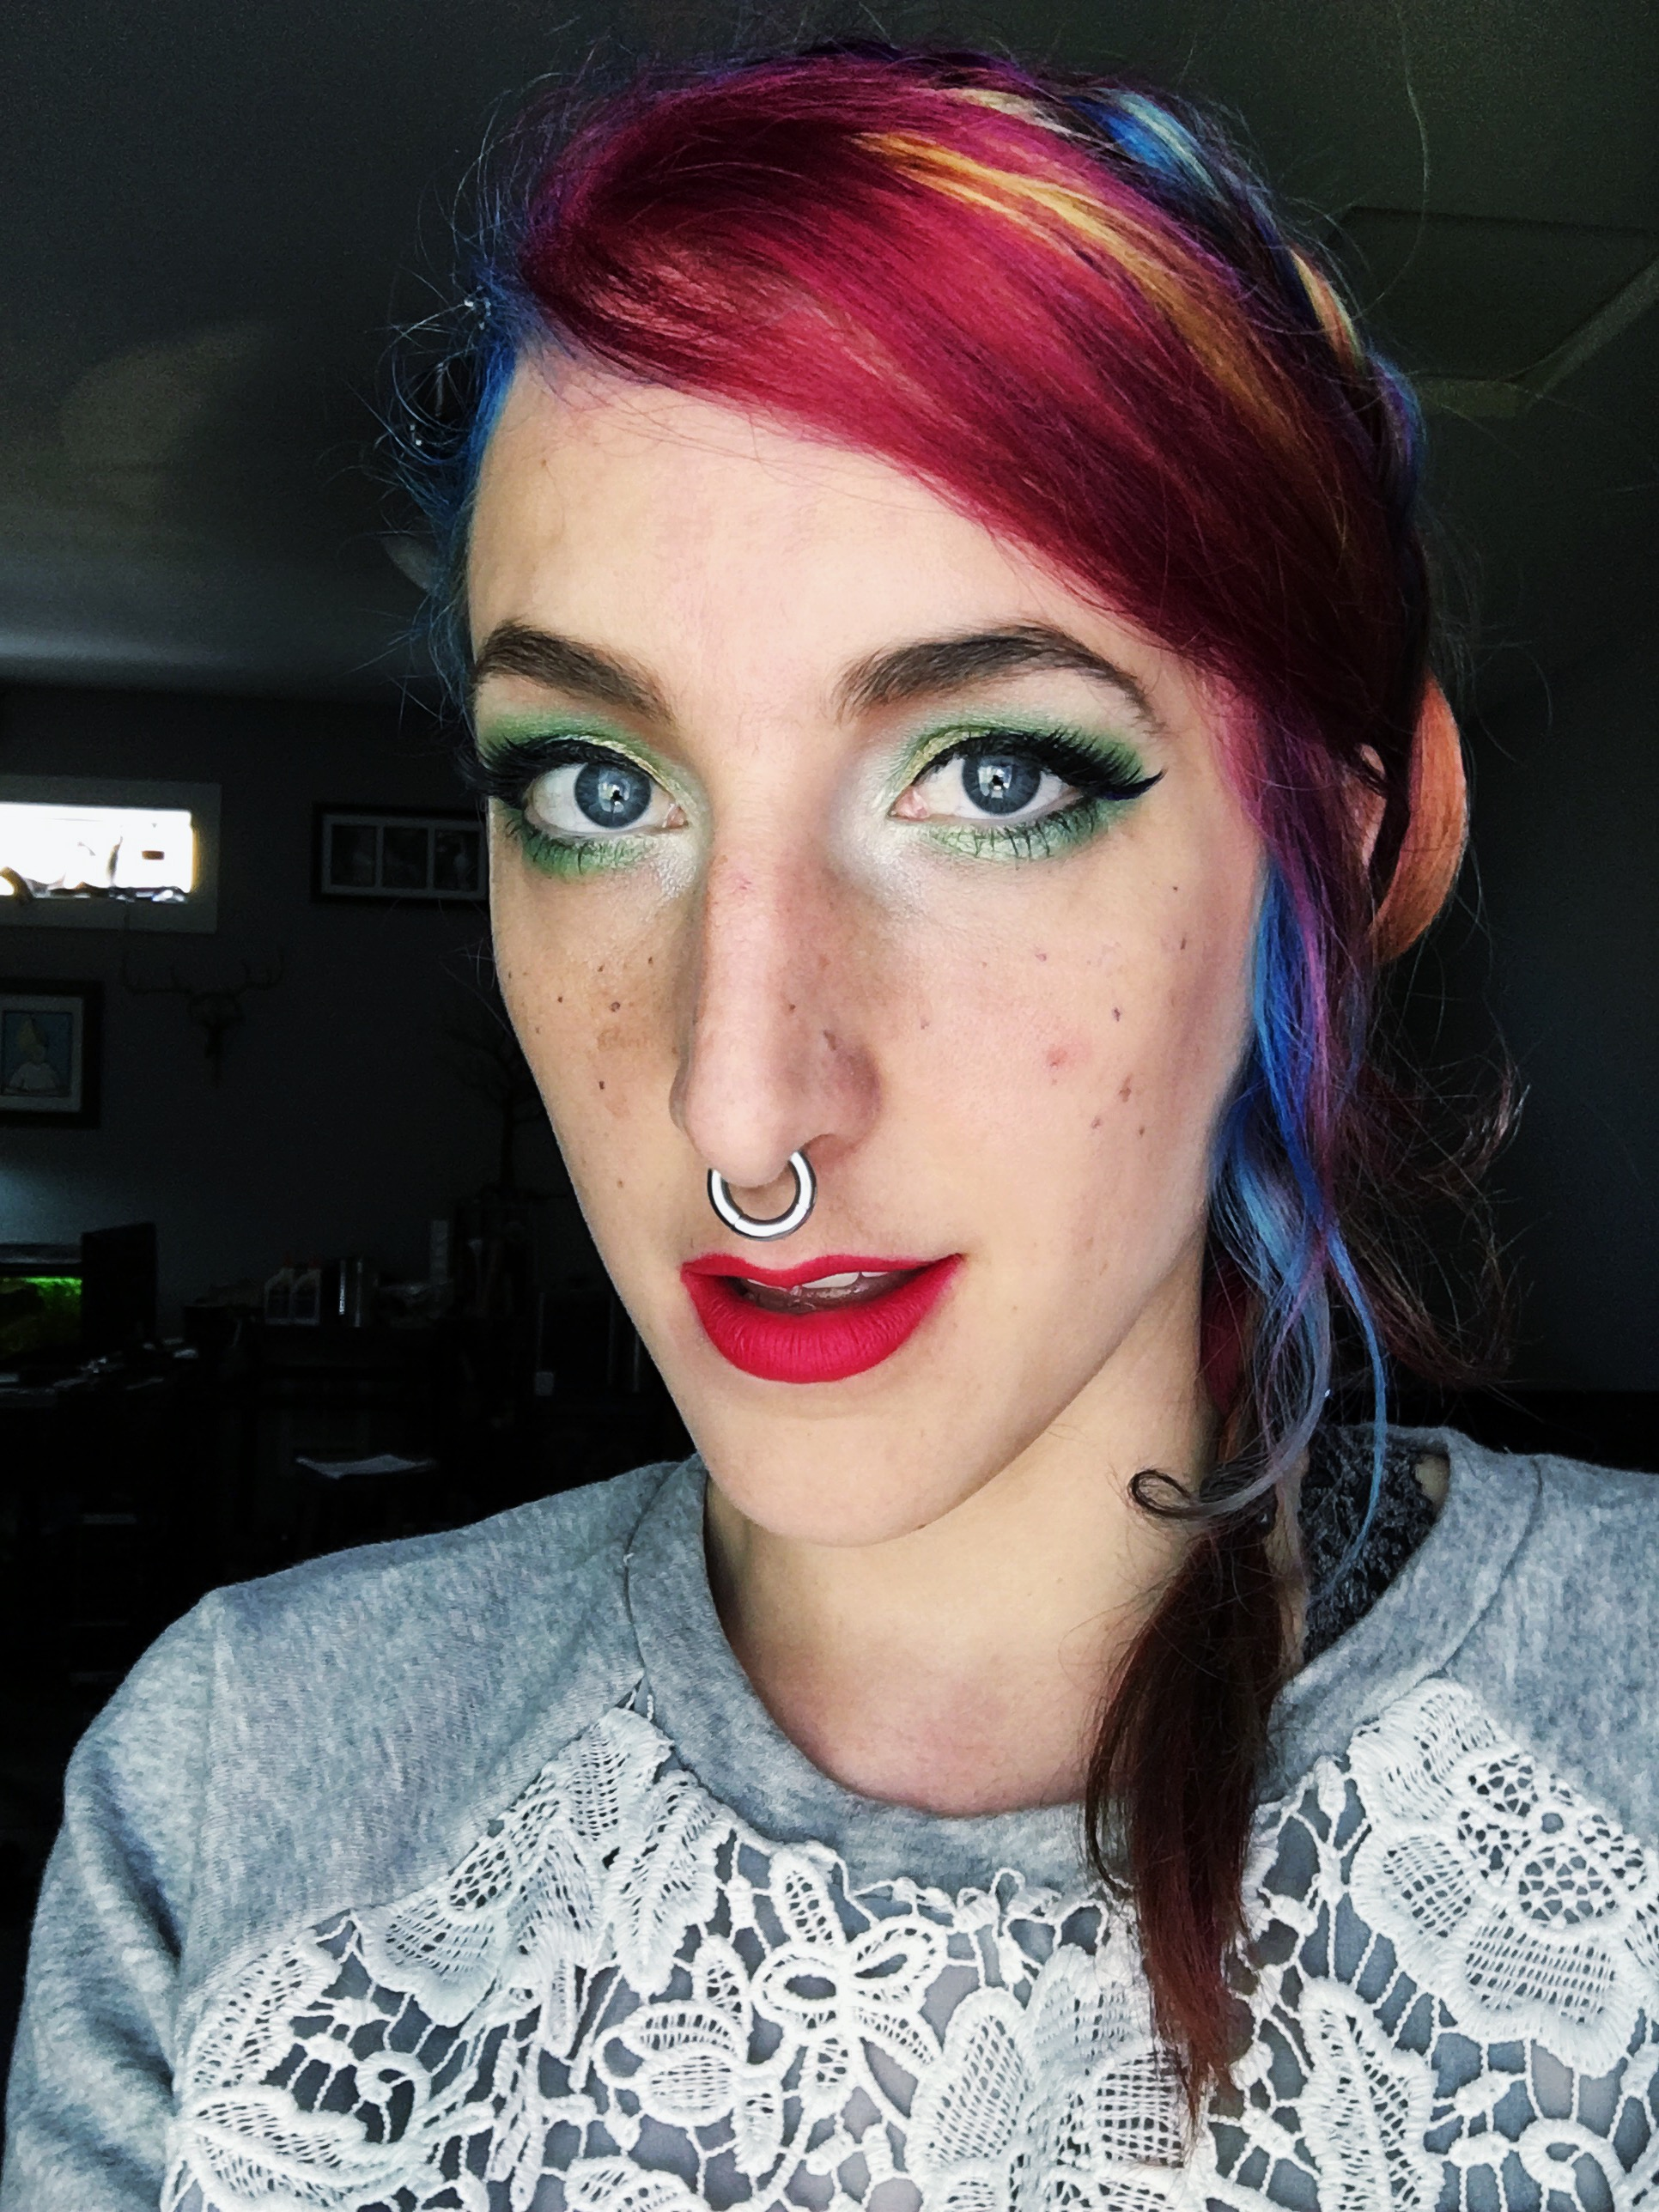 Rainbow hair and green makeup